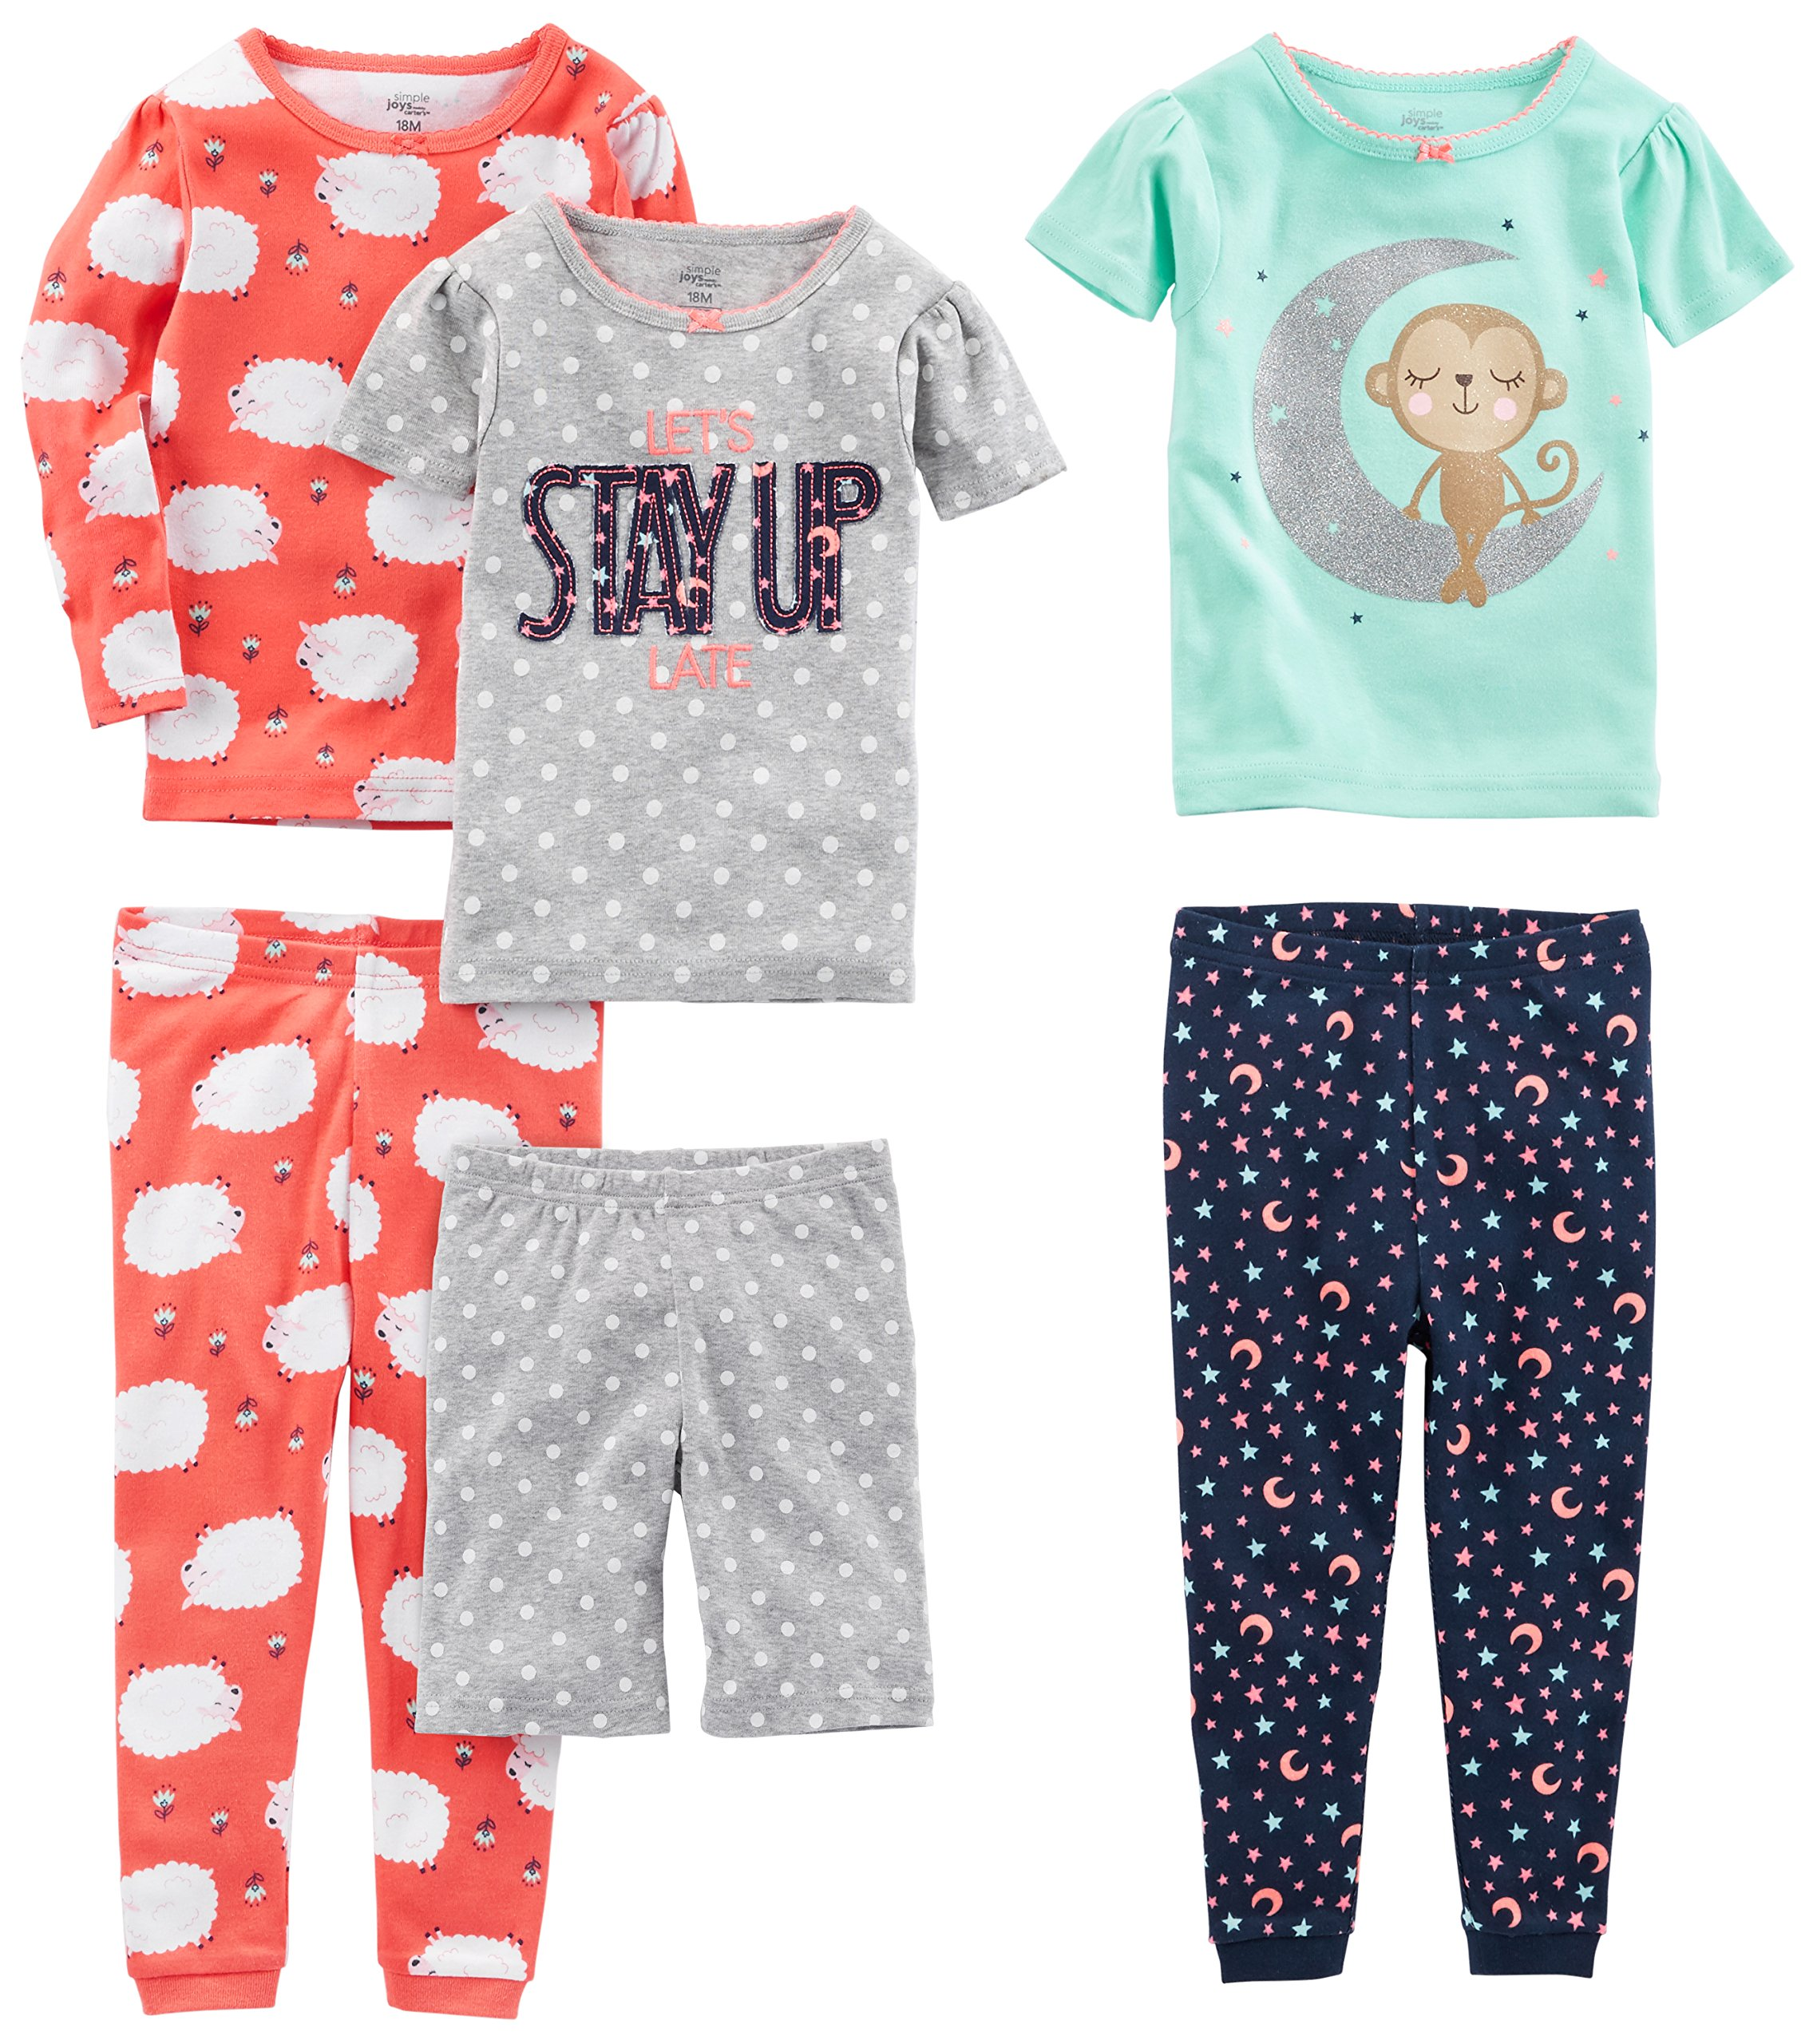 Simple Joys by Carter's Baby Girls 6-Piece Snug Fit Cotton Pajama Set, Sheep/Dot/Monkey, 24 Months